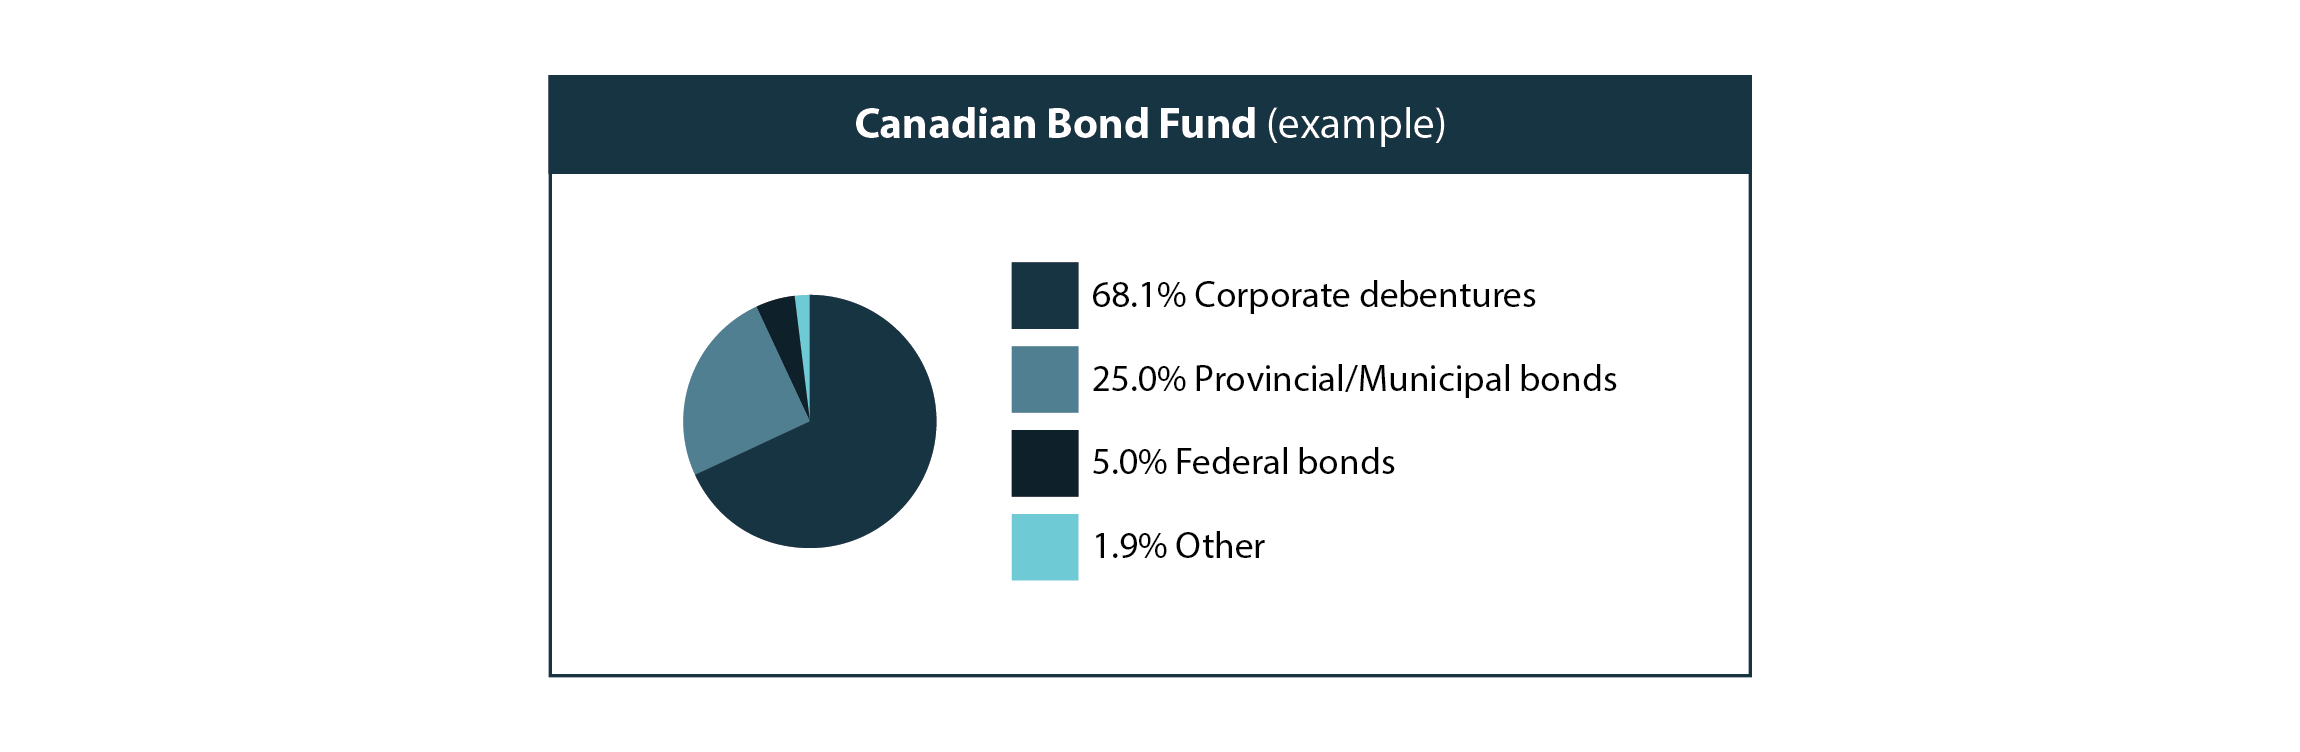 Canadian bond fund example